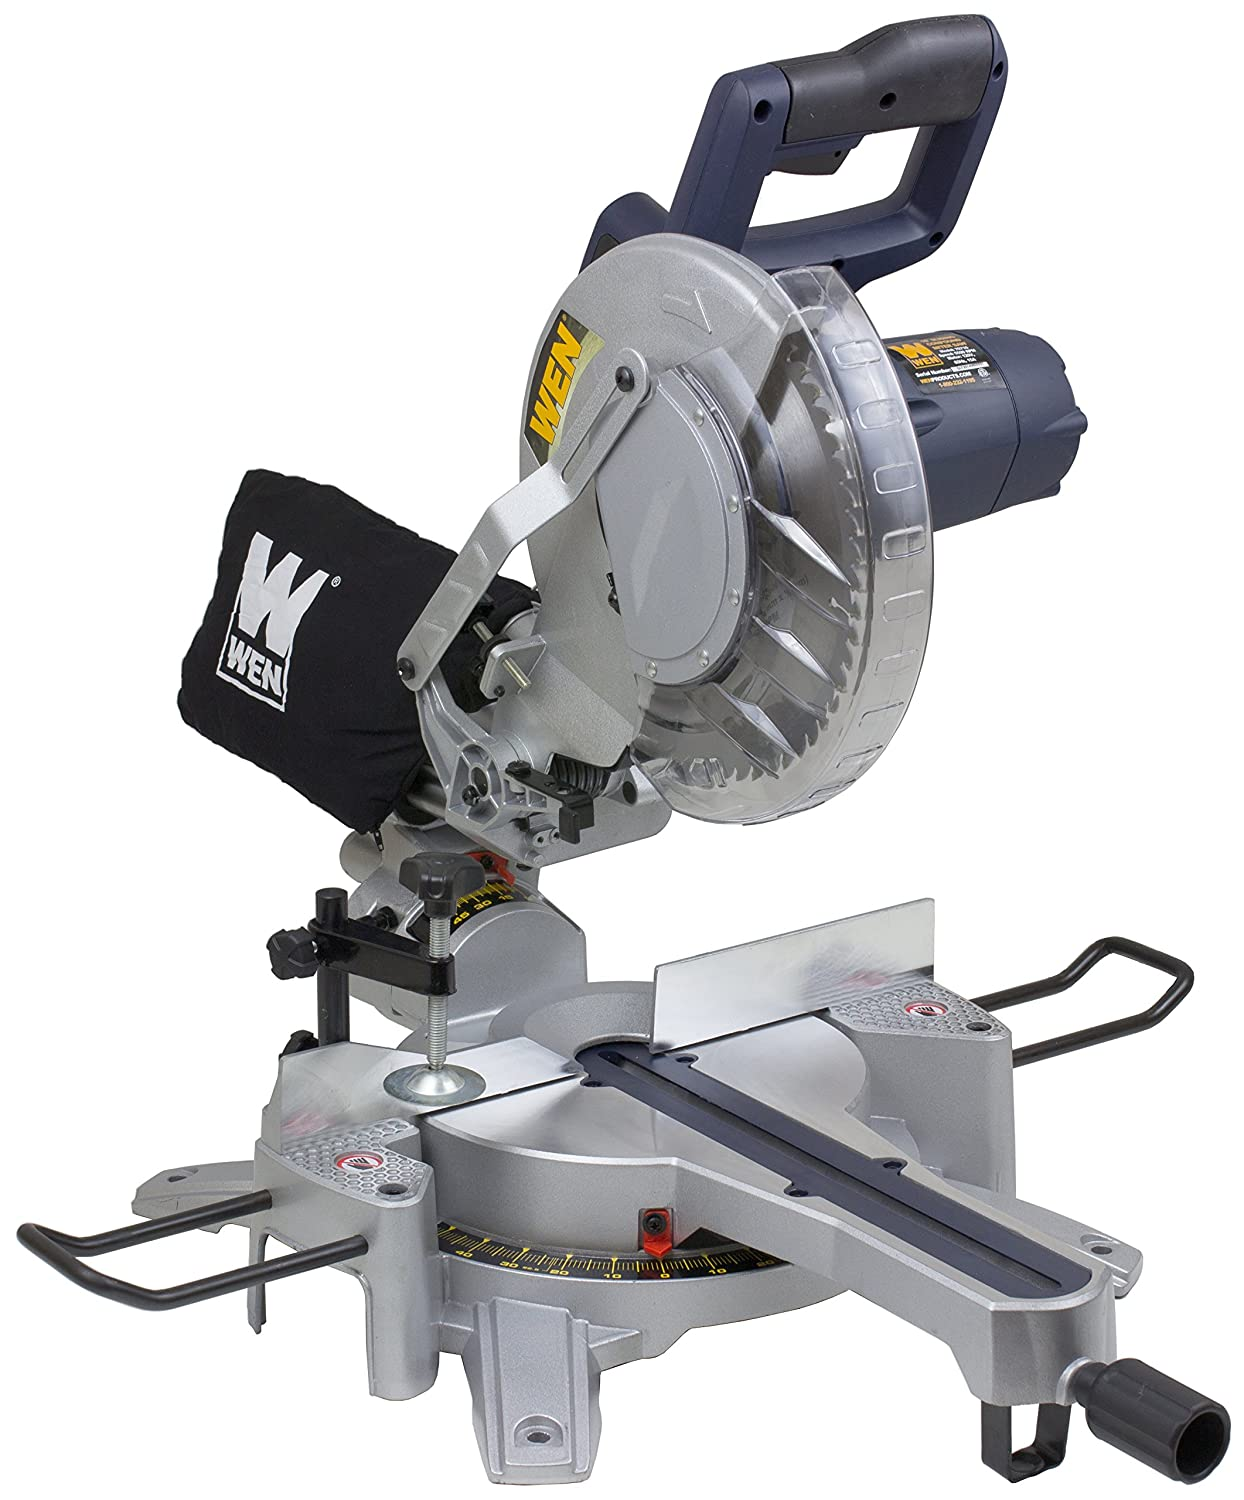 WEN 70716 - Best Sliding Compound Miter Saw